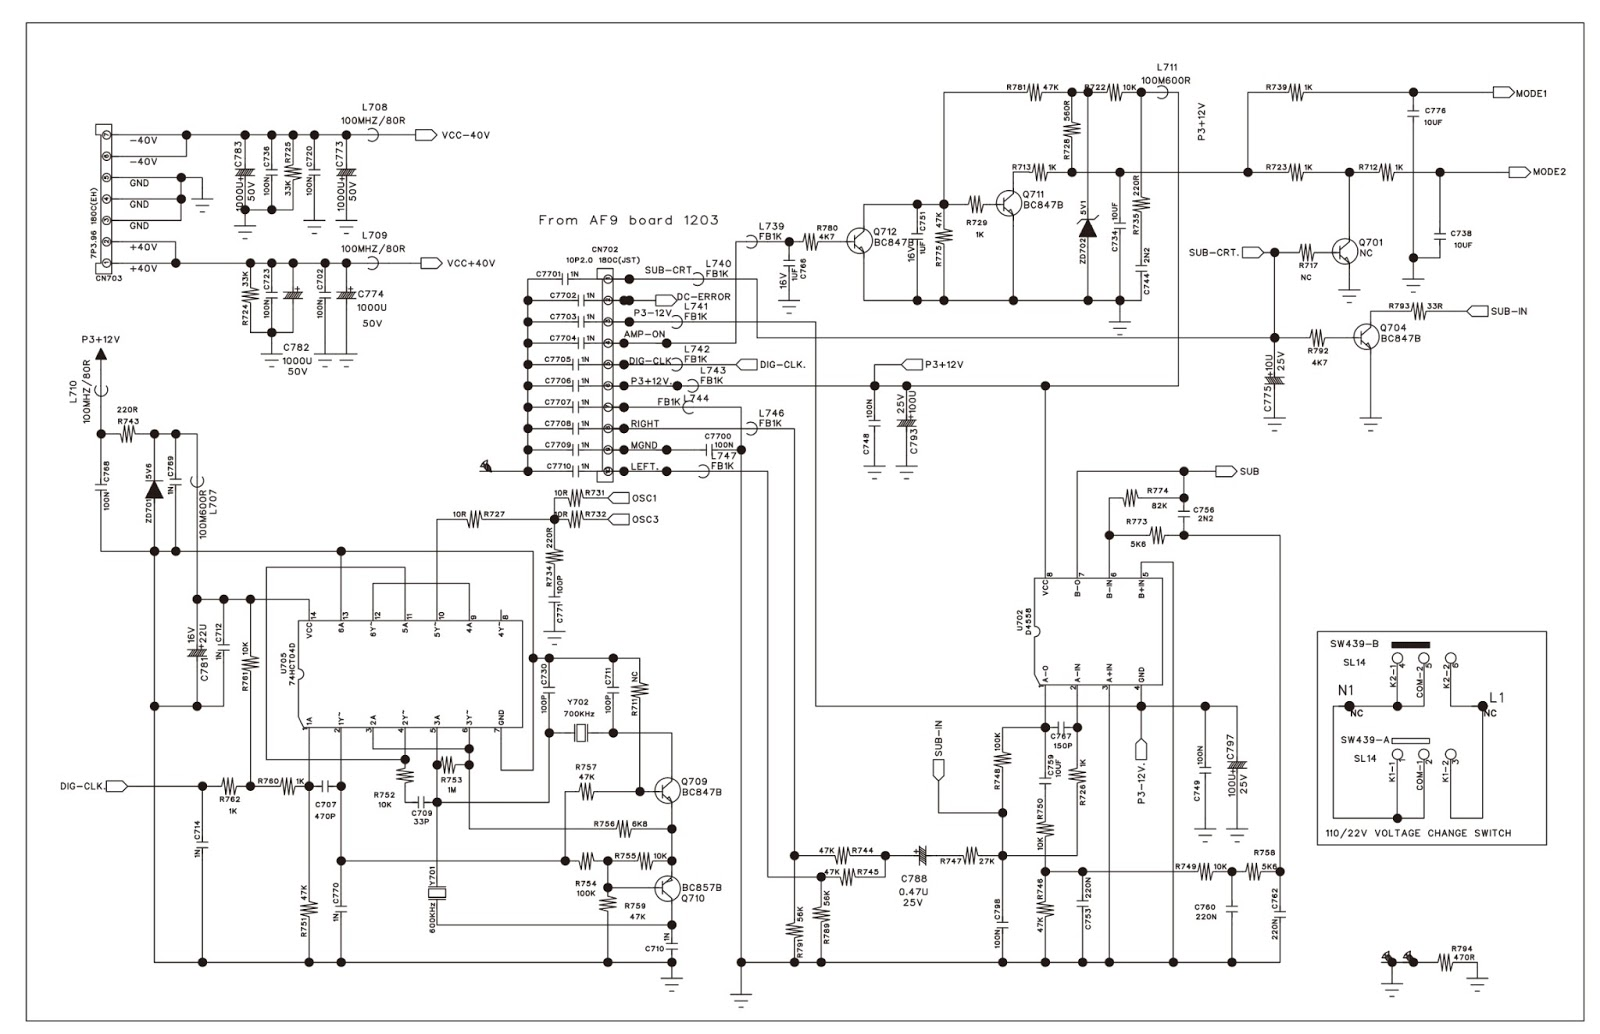 PHILIPS FWM6500  SCHEMATIC DIAGRAMS  Printed Circuit Boards | Electro help